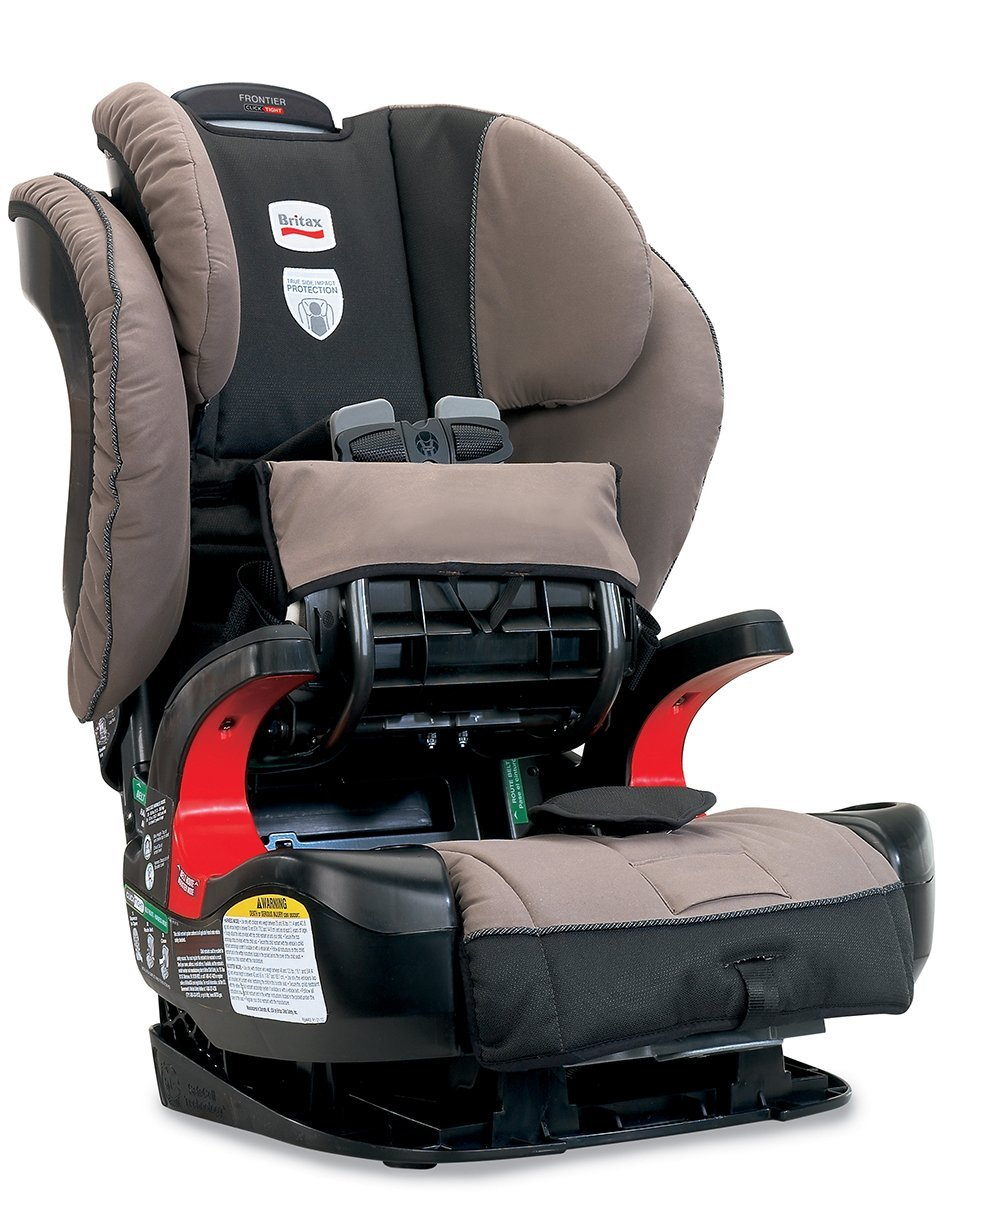 carseatblog the most trusted source for car seat reviews ratings rh carseatblog com Britax Frontier 90 Sale manuel britax frontier 90